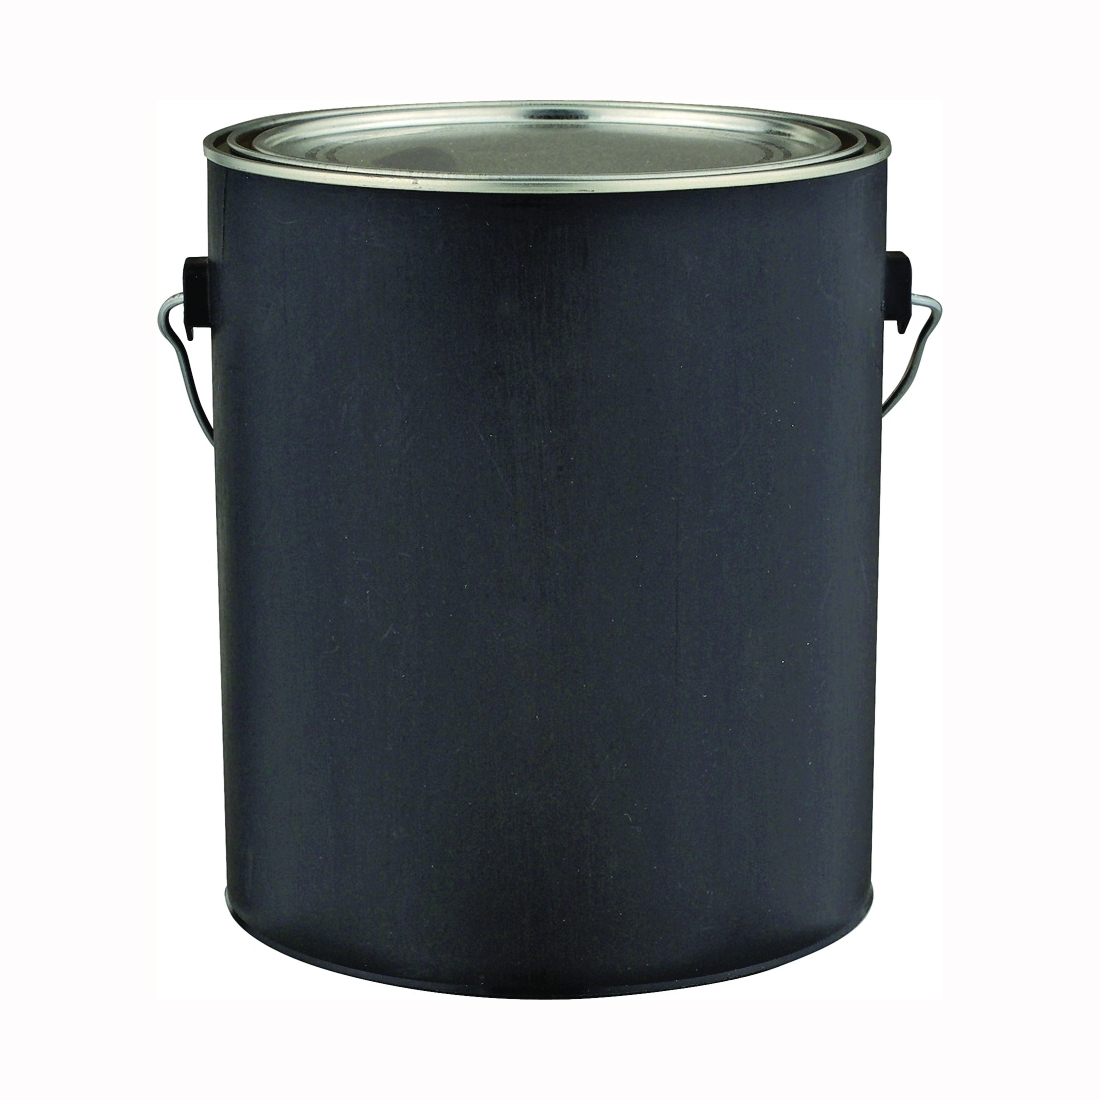 Picture of Valspar 60689 Empty Paint Can, 1 gal Capacity, Metal, Chrome